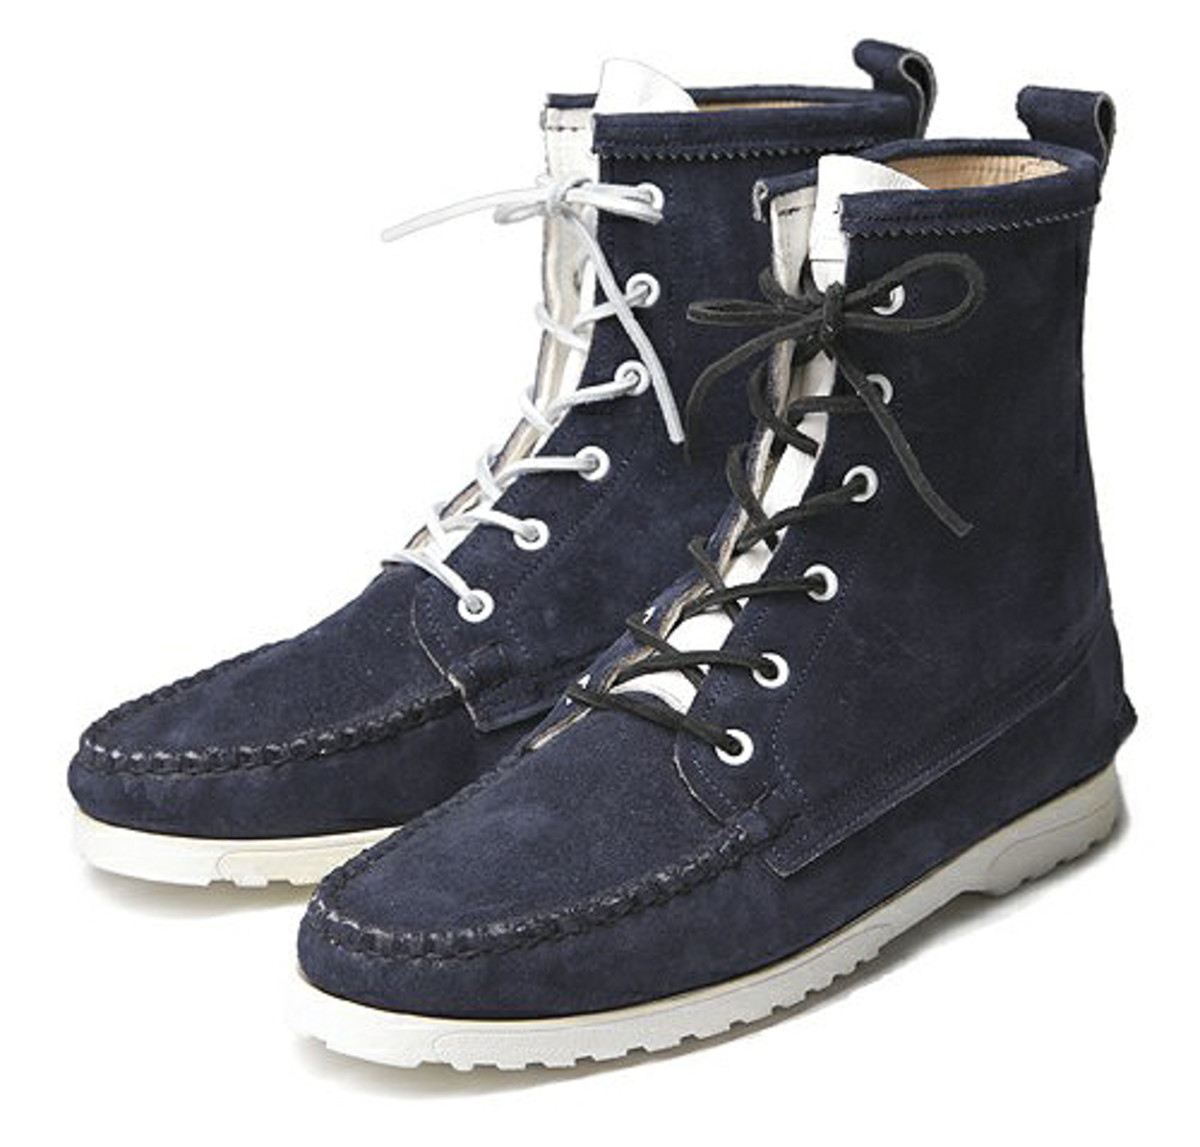 uno-caol-showten-quoddy-trail-moccasin-deck-boots-02